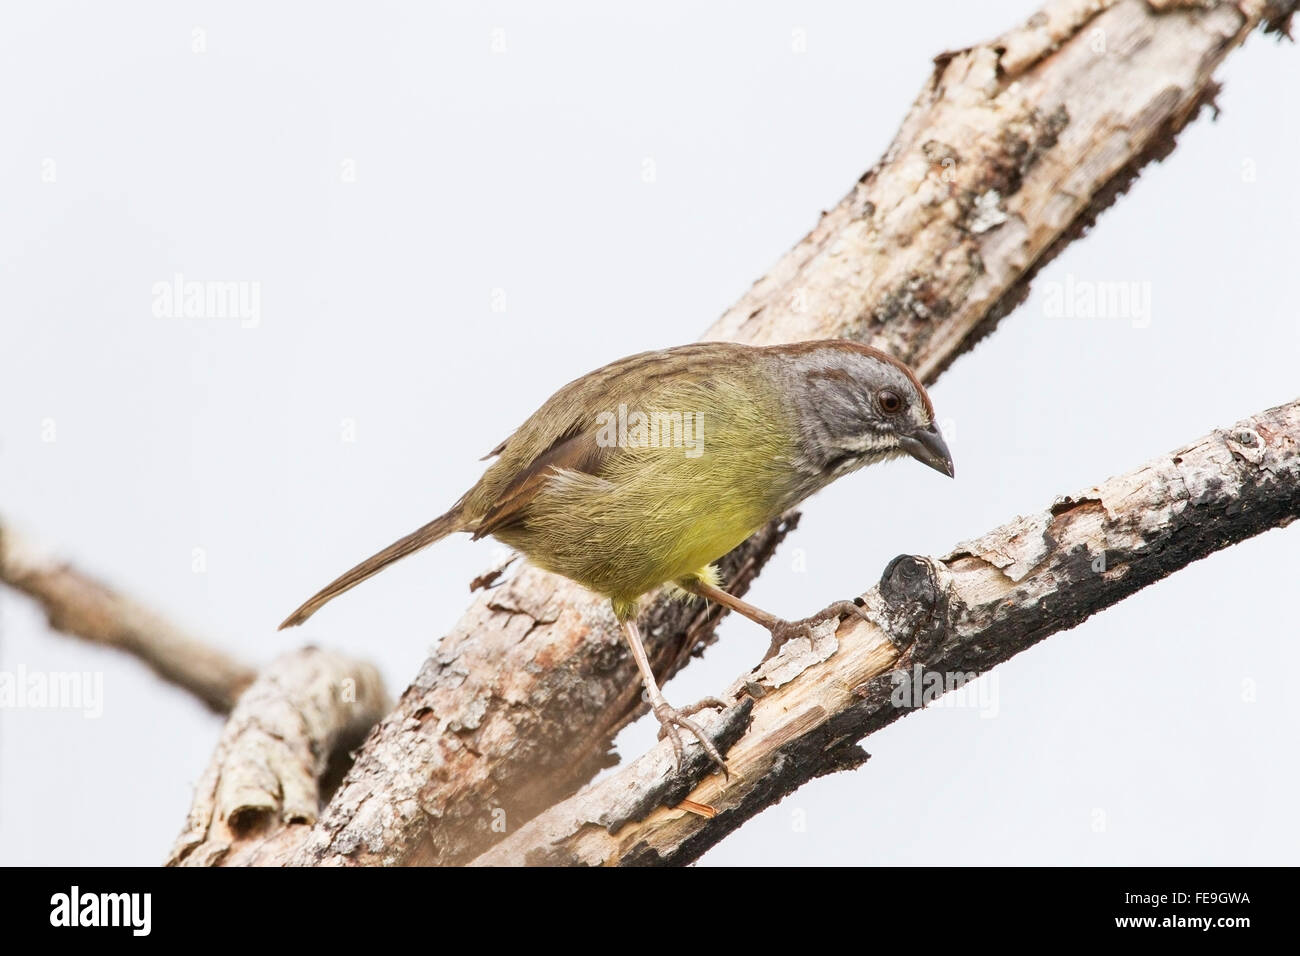 Zapata sparrow (Torreornis inexpectata) single adult perched in tree, Zapata swamp, Cuba - Stock Image